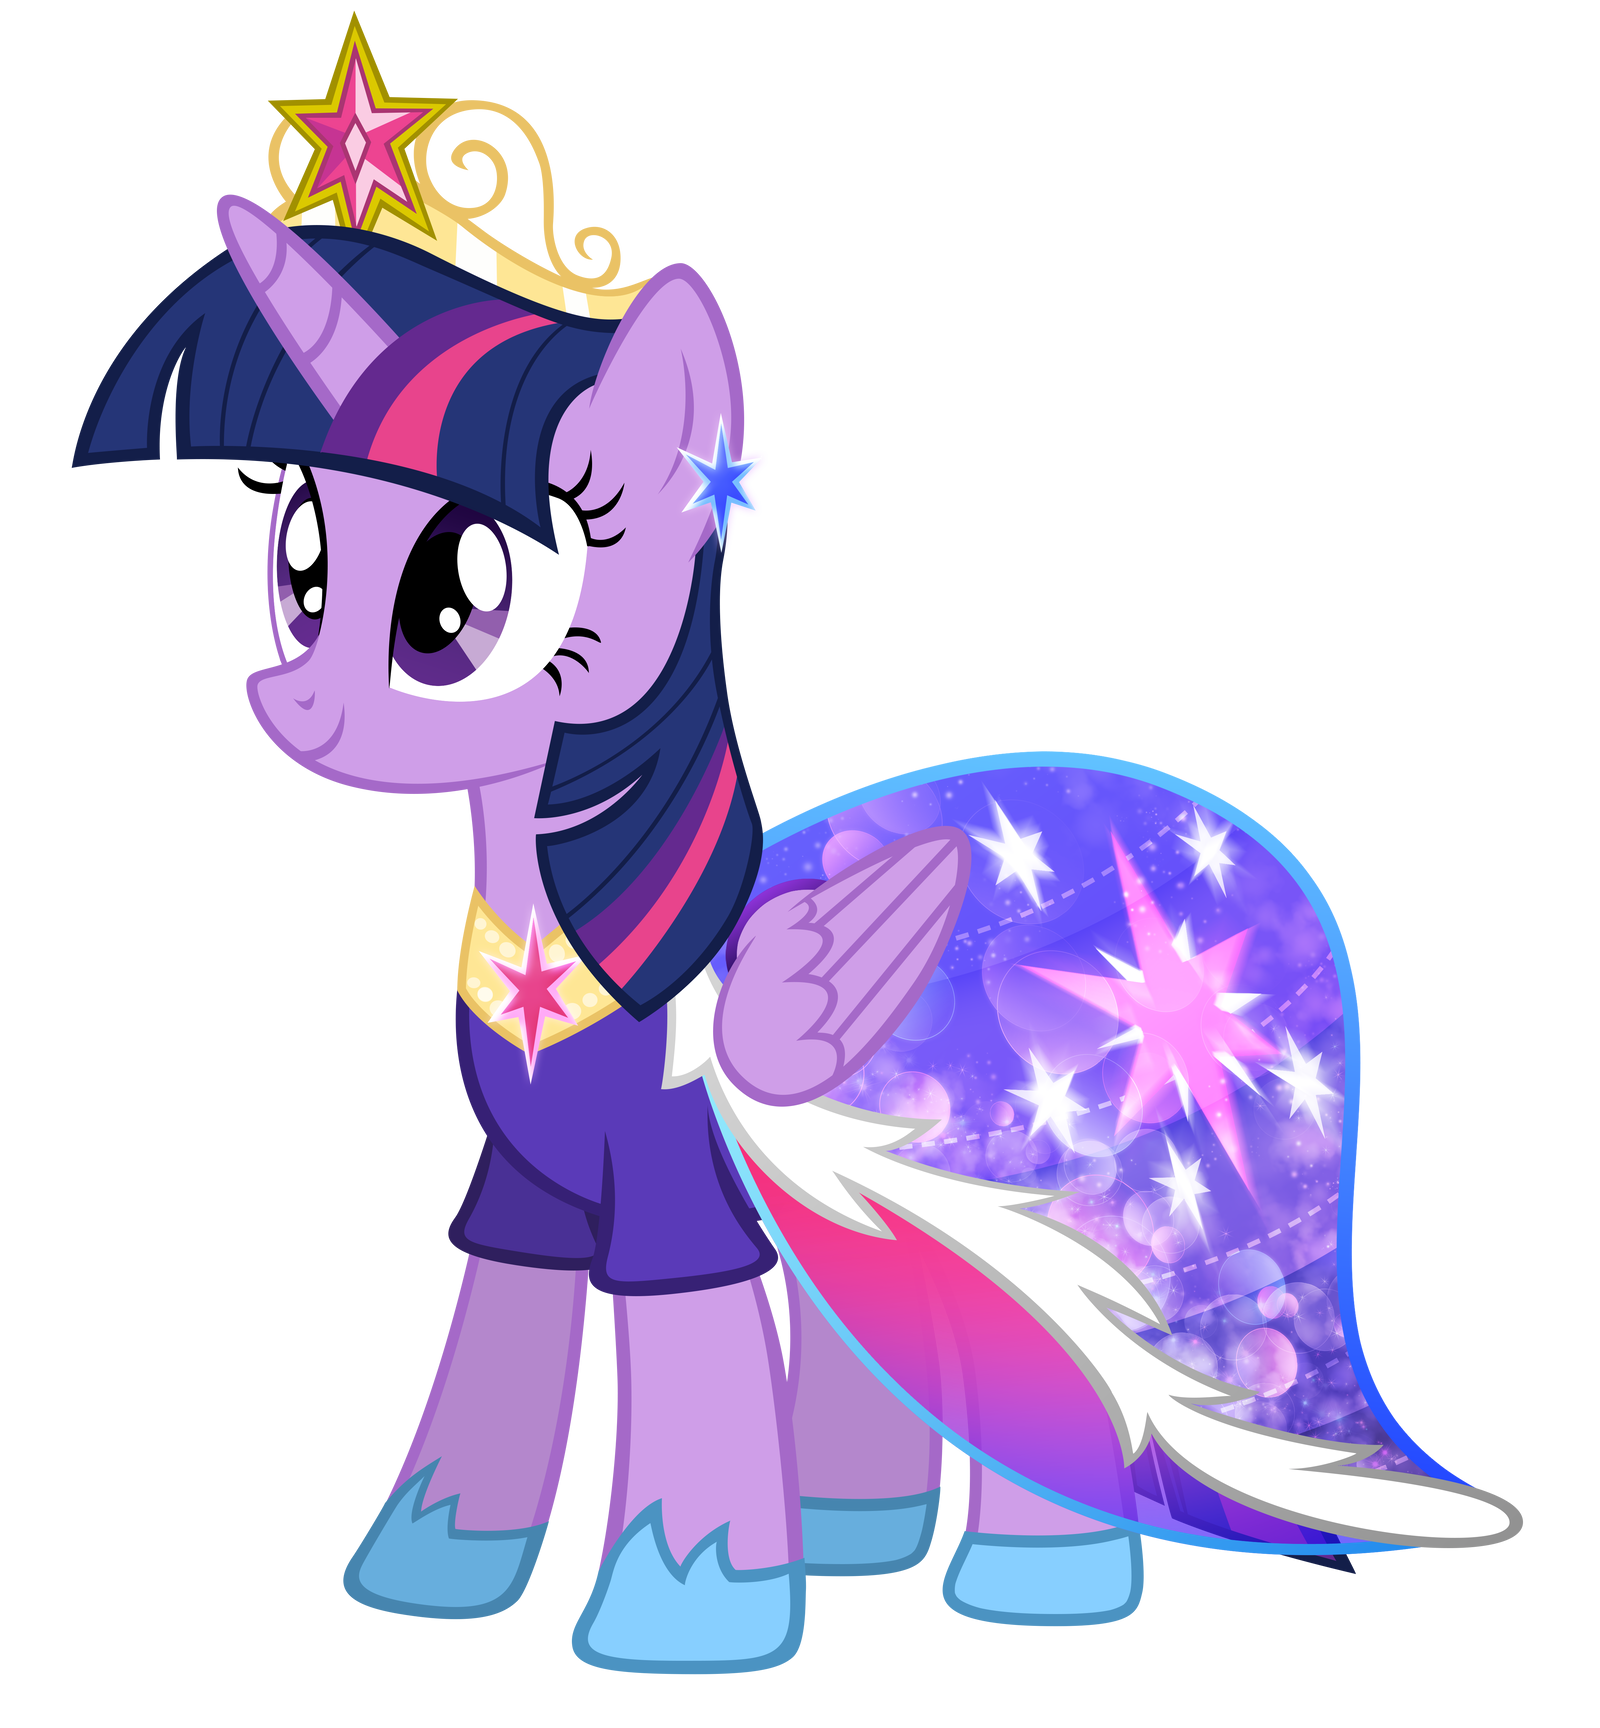 Twilight Sparkle - The Mane Dress Project by KibbieTheGreat